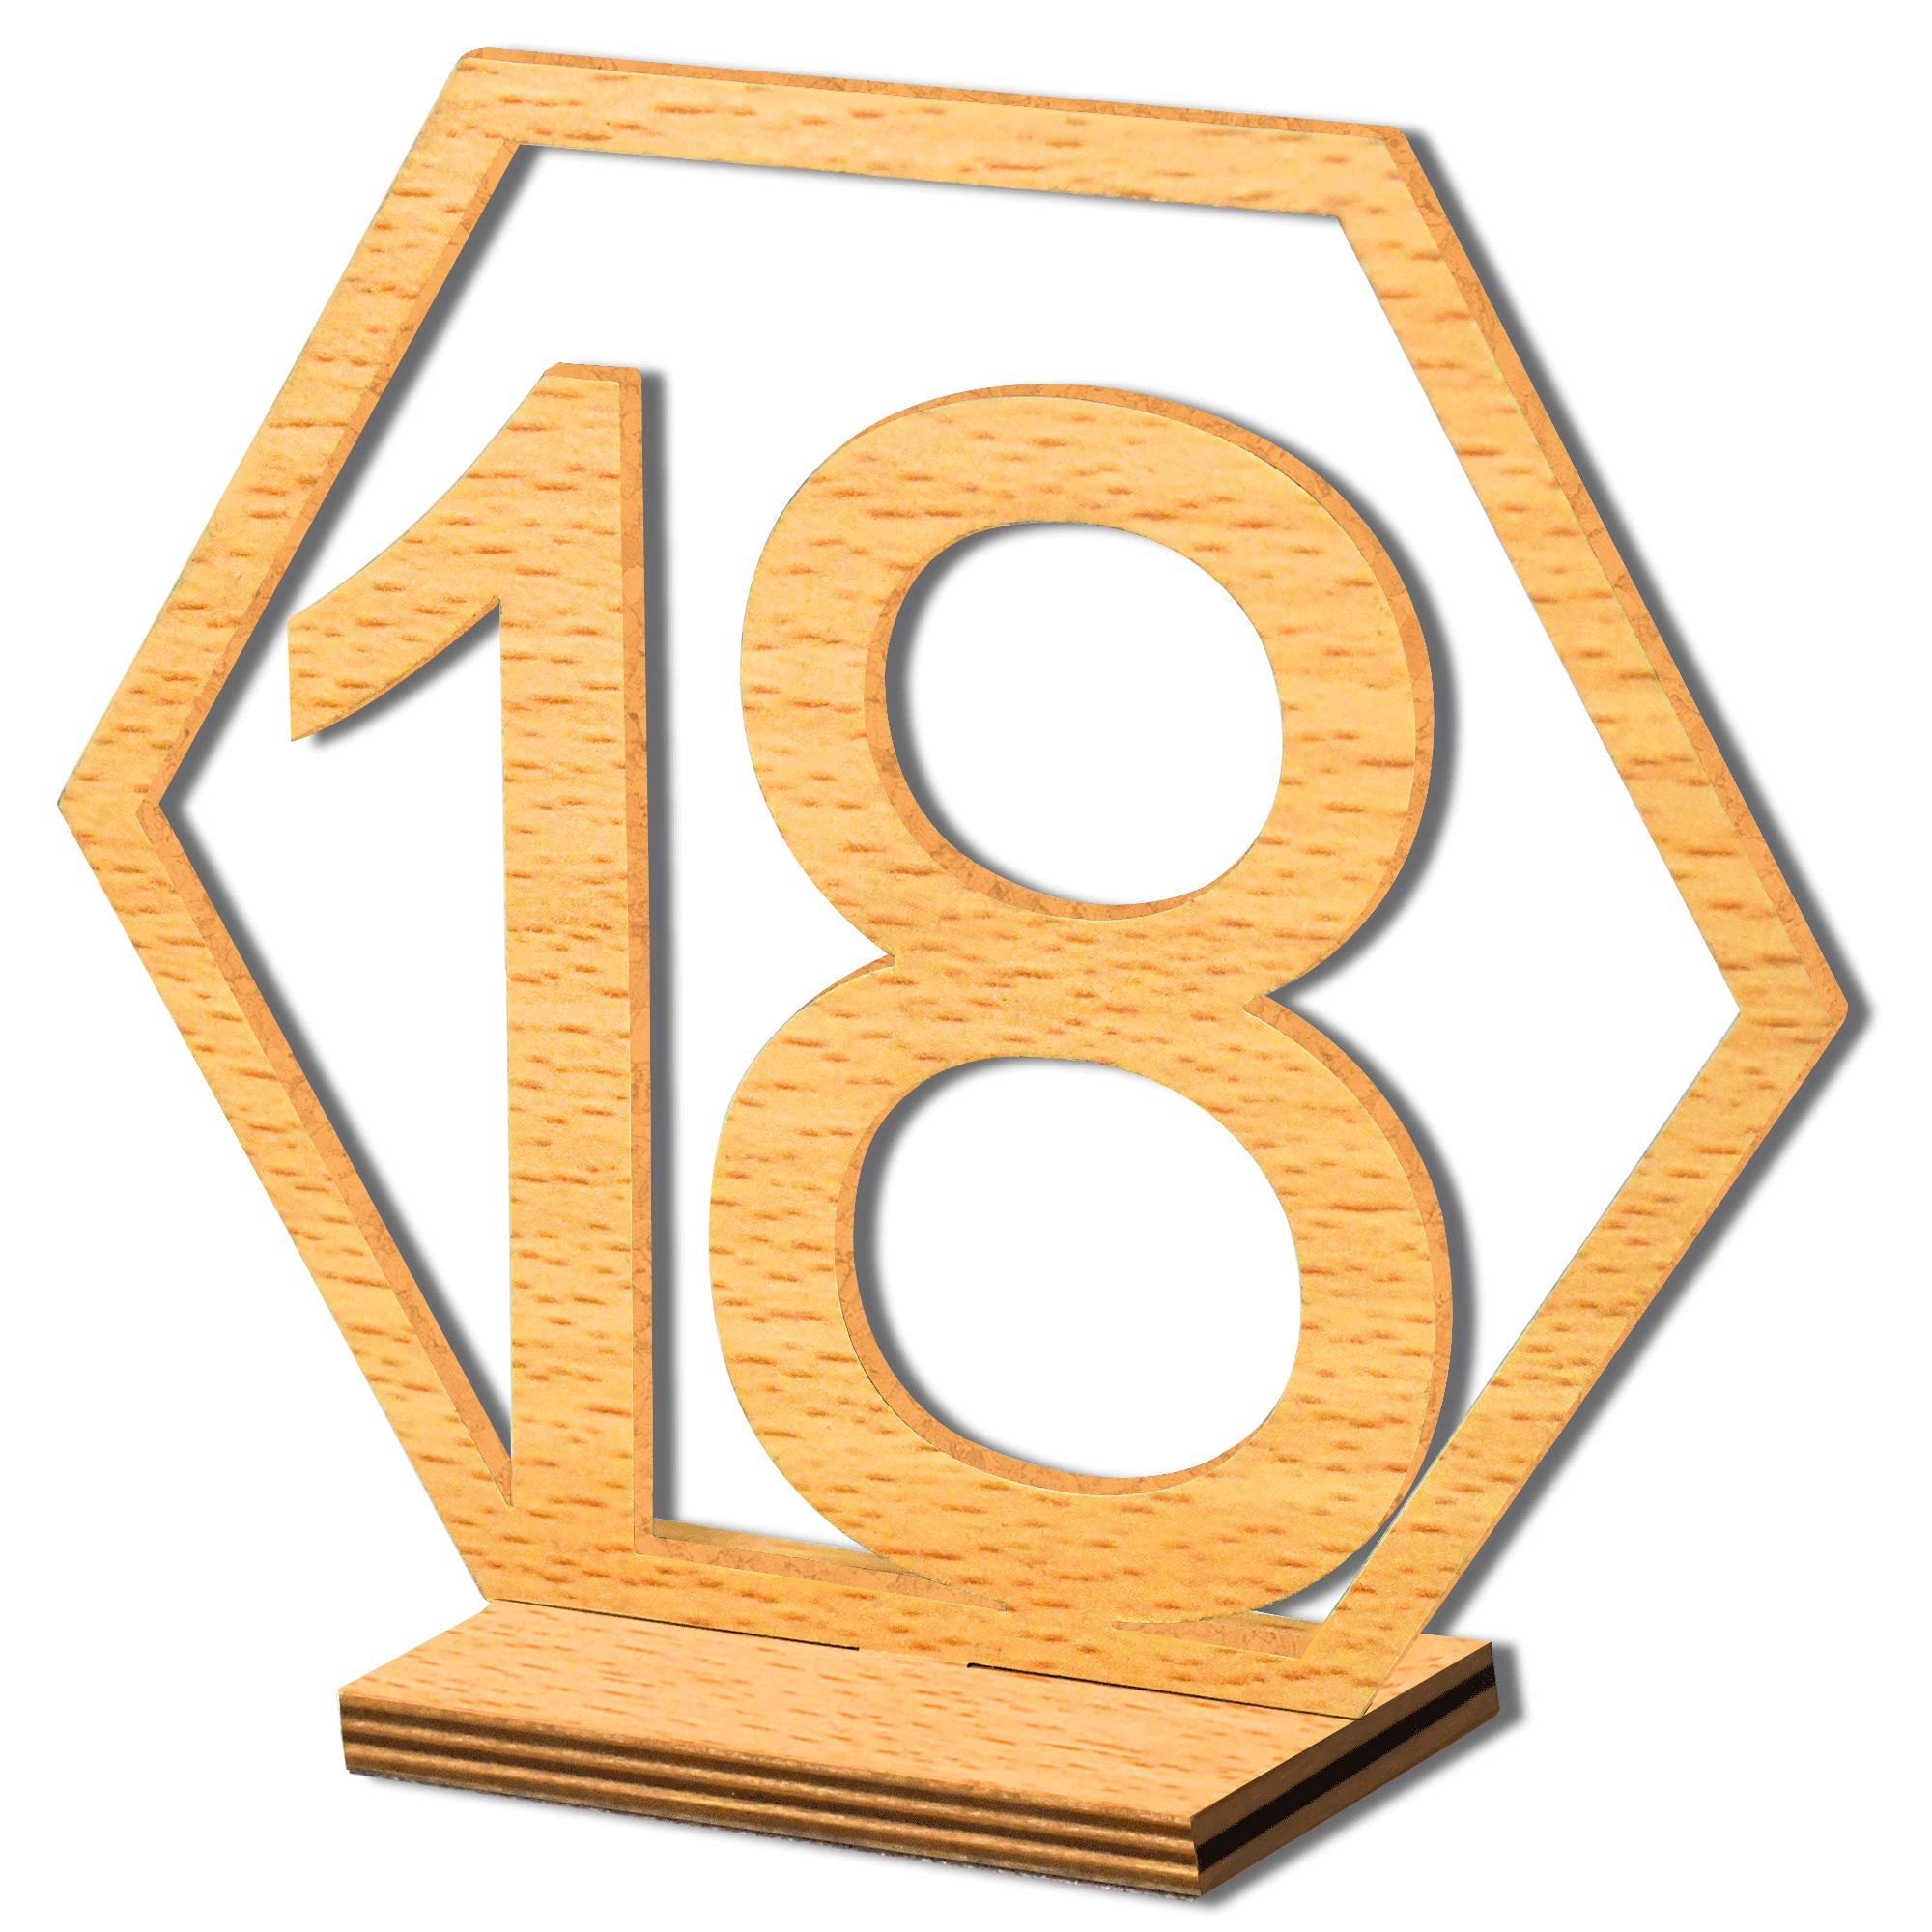 YUQI Table Numbers 1-20 with Sturdy Stand, Wood Desks Wedding Tables Numbers with Holder Base for Party Home Decoration,Vintage Birthday Events Banquet Anniversary Decor Wooden Catering Reception